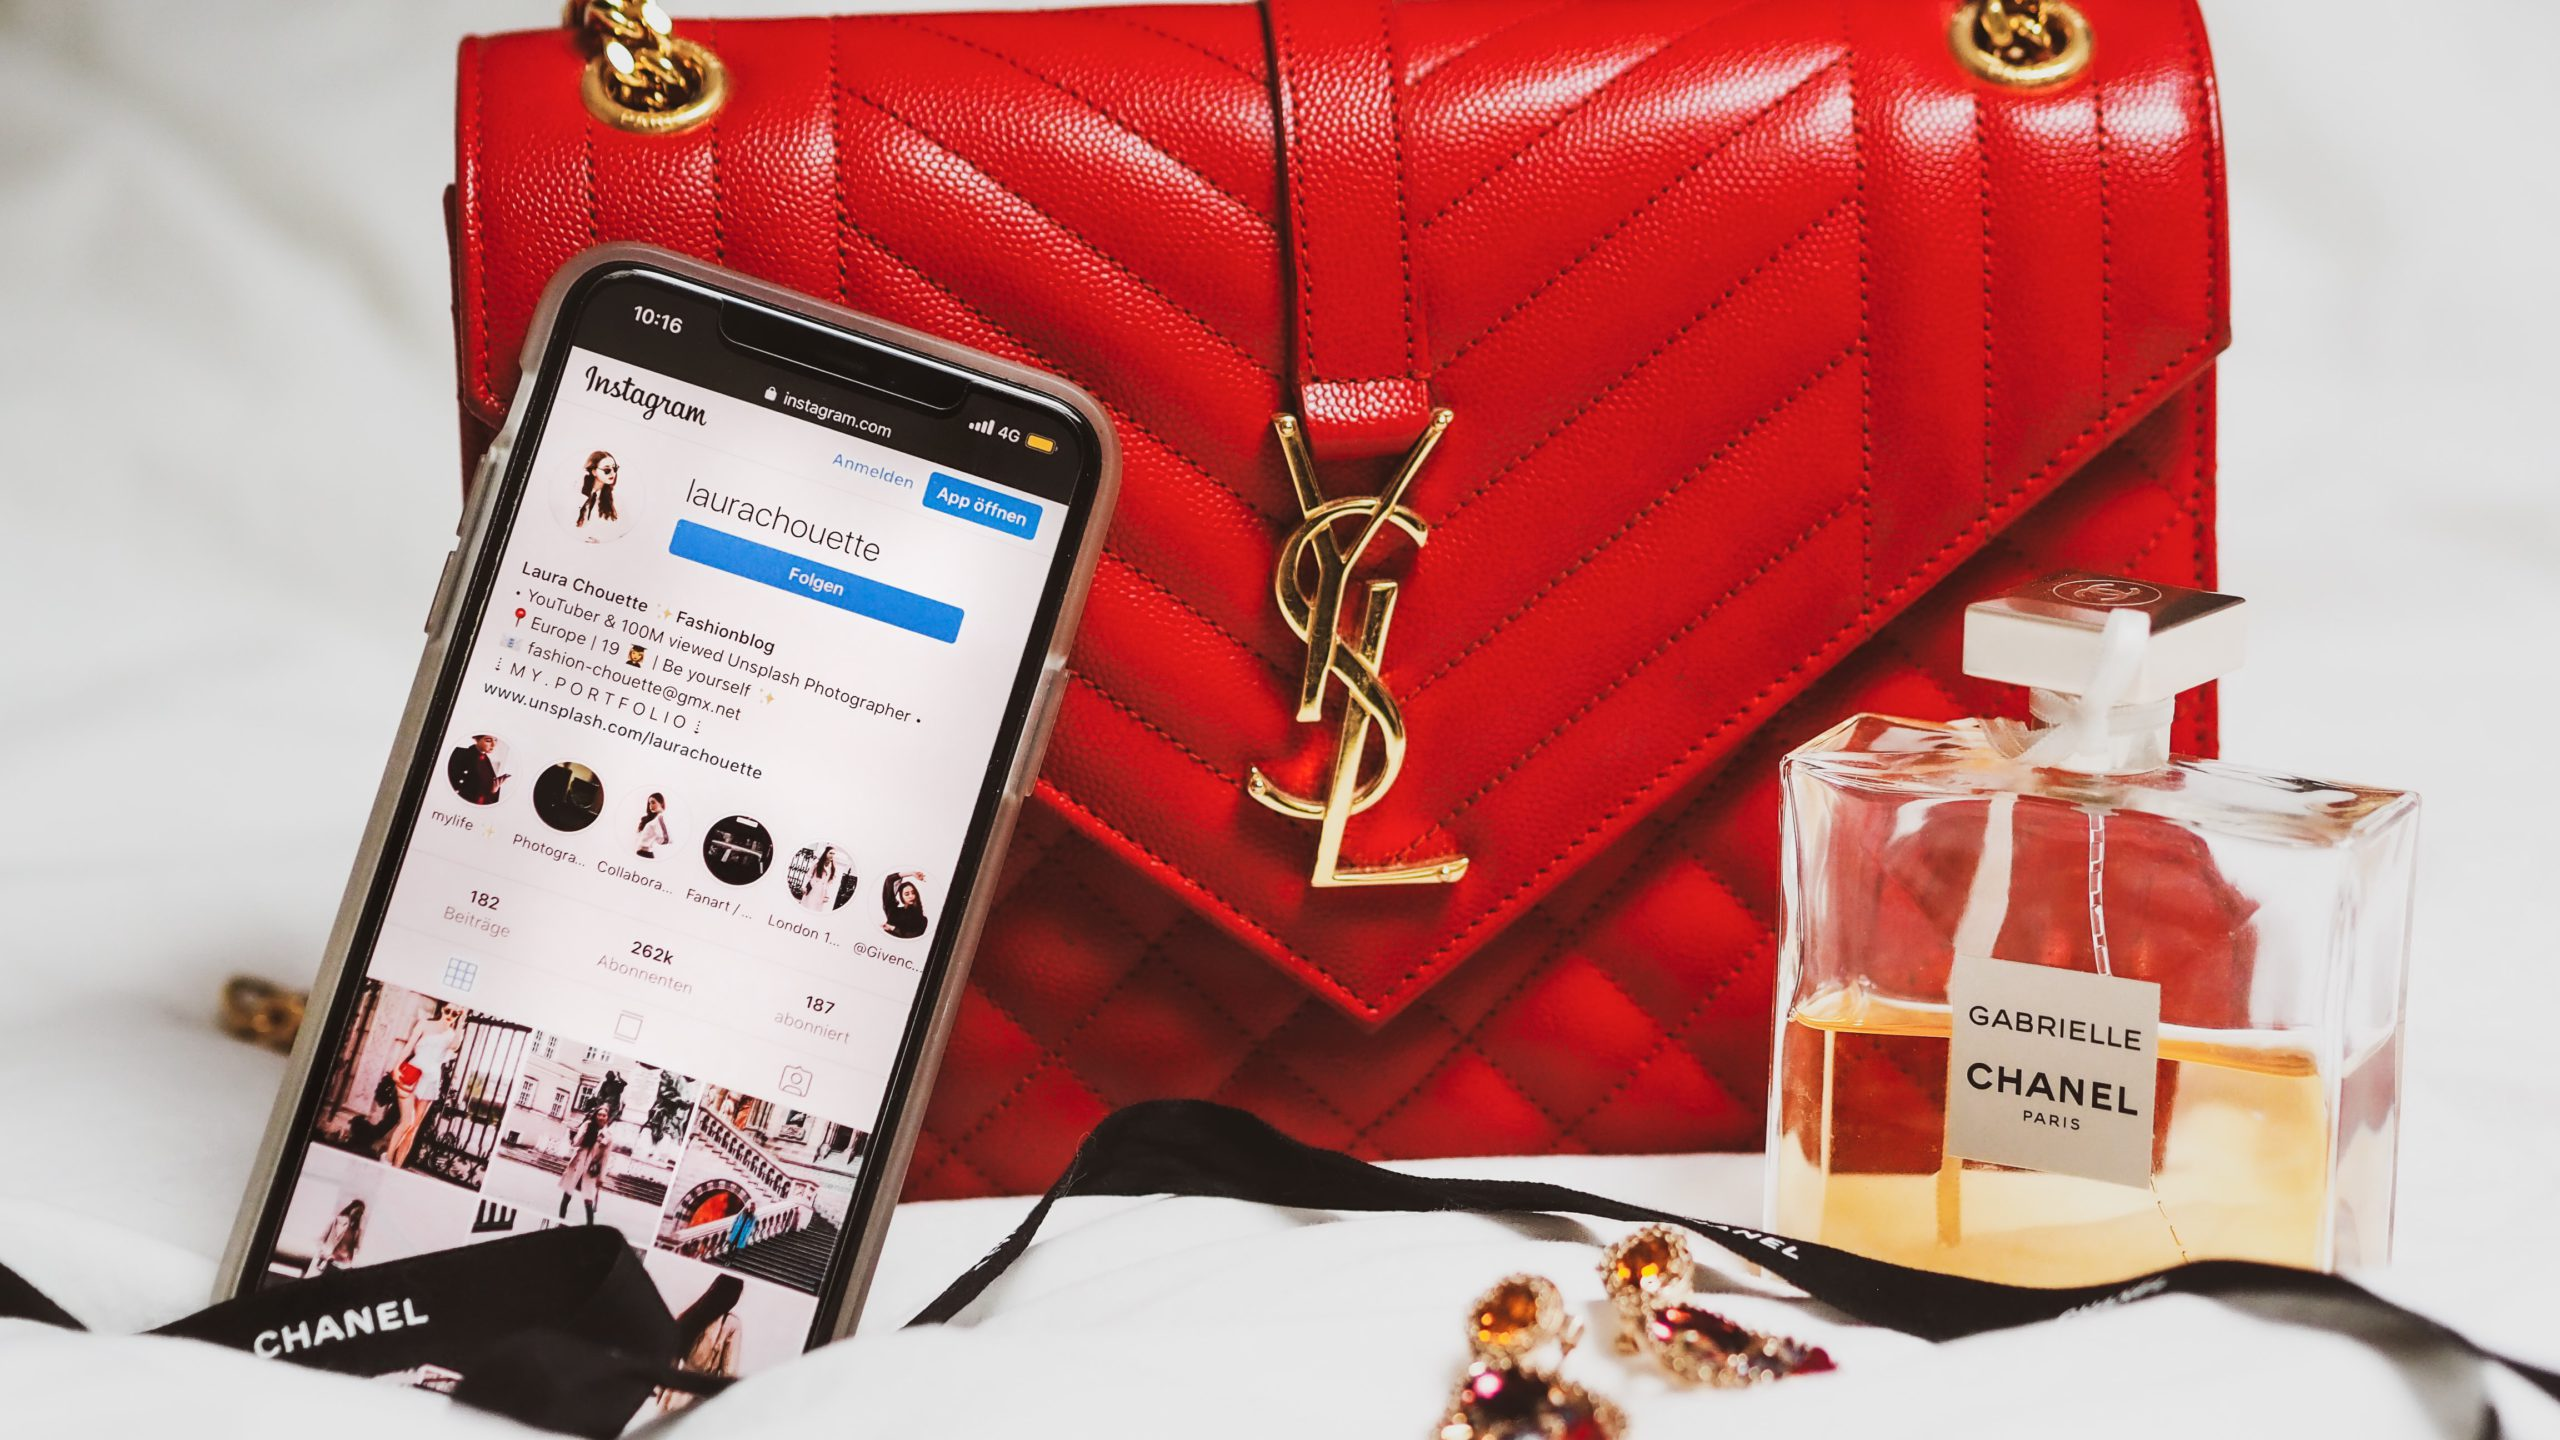 Luxury products will have to adapt to the new customers